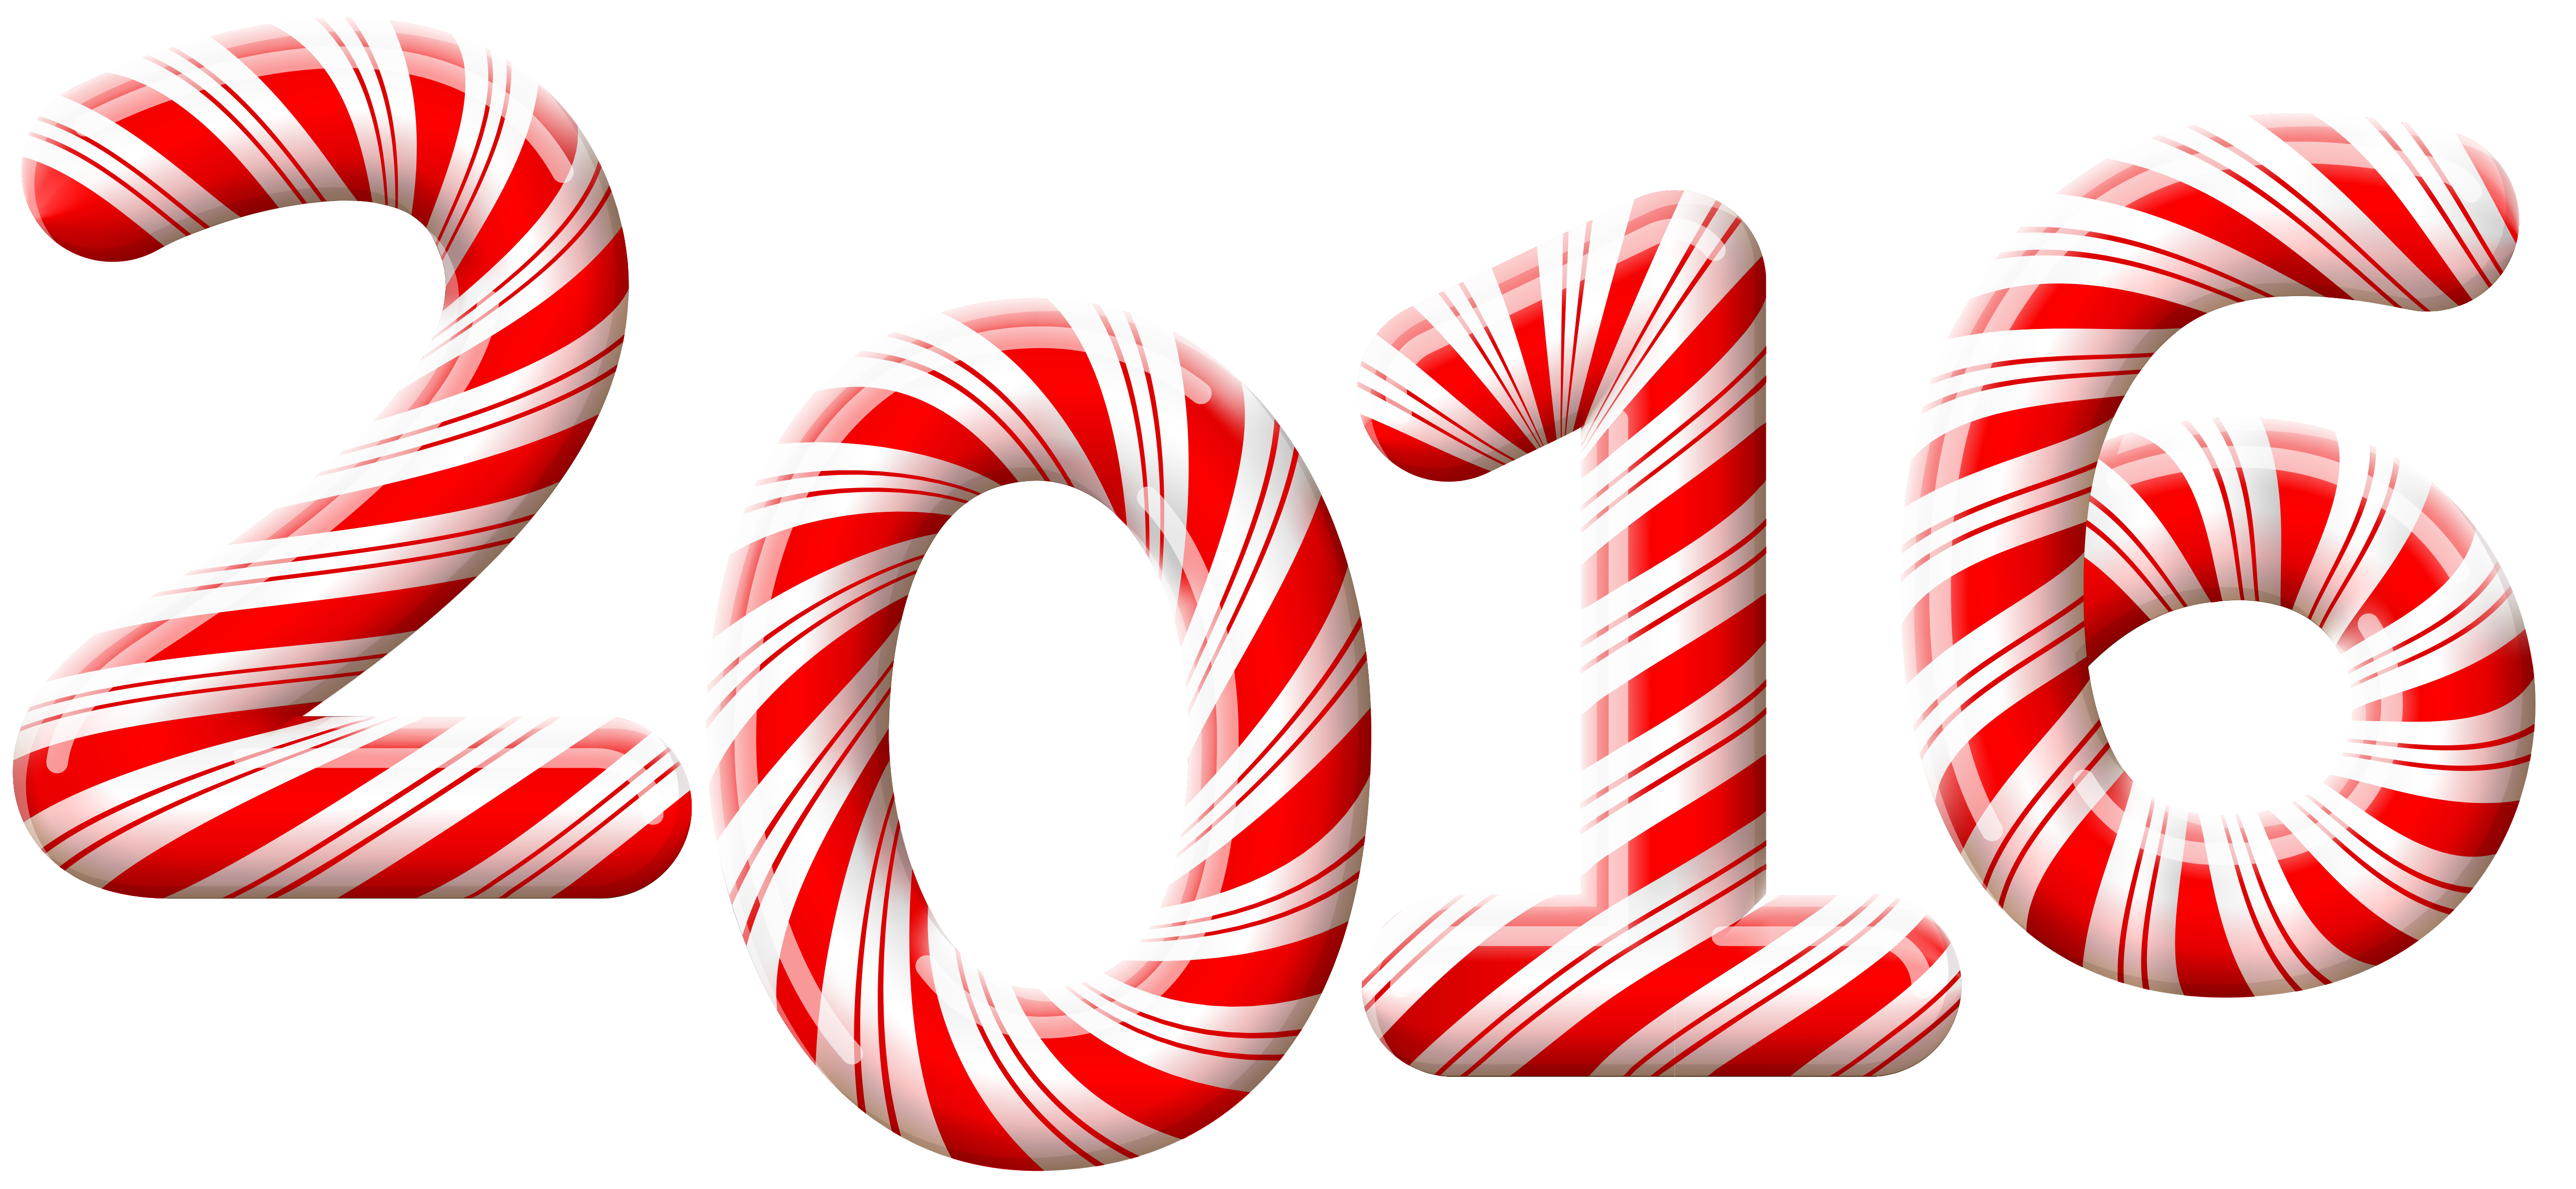 clipart black and white download  candy cane png. 2016 clipart